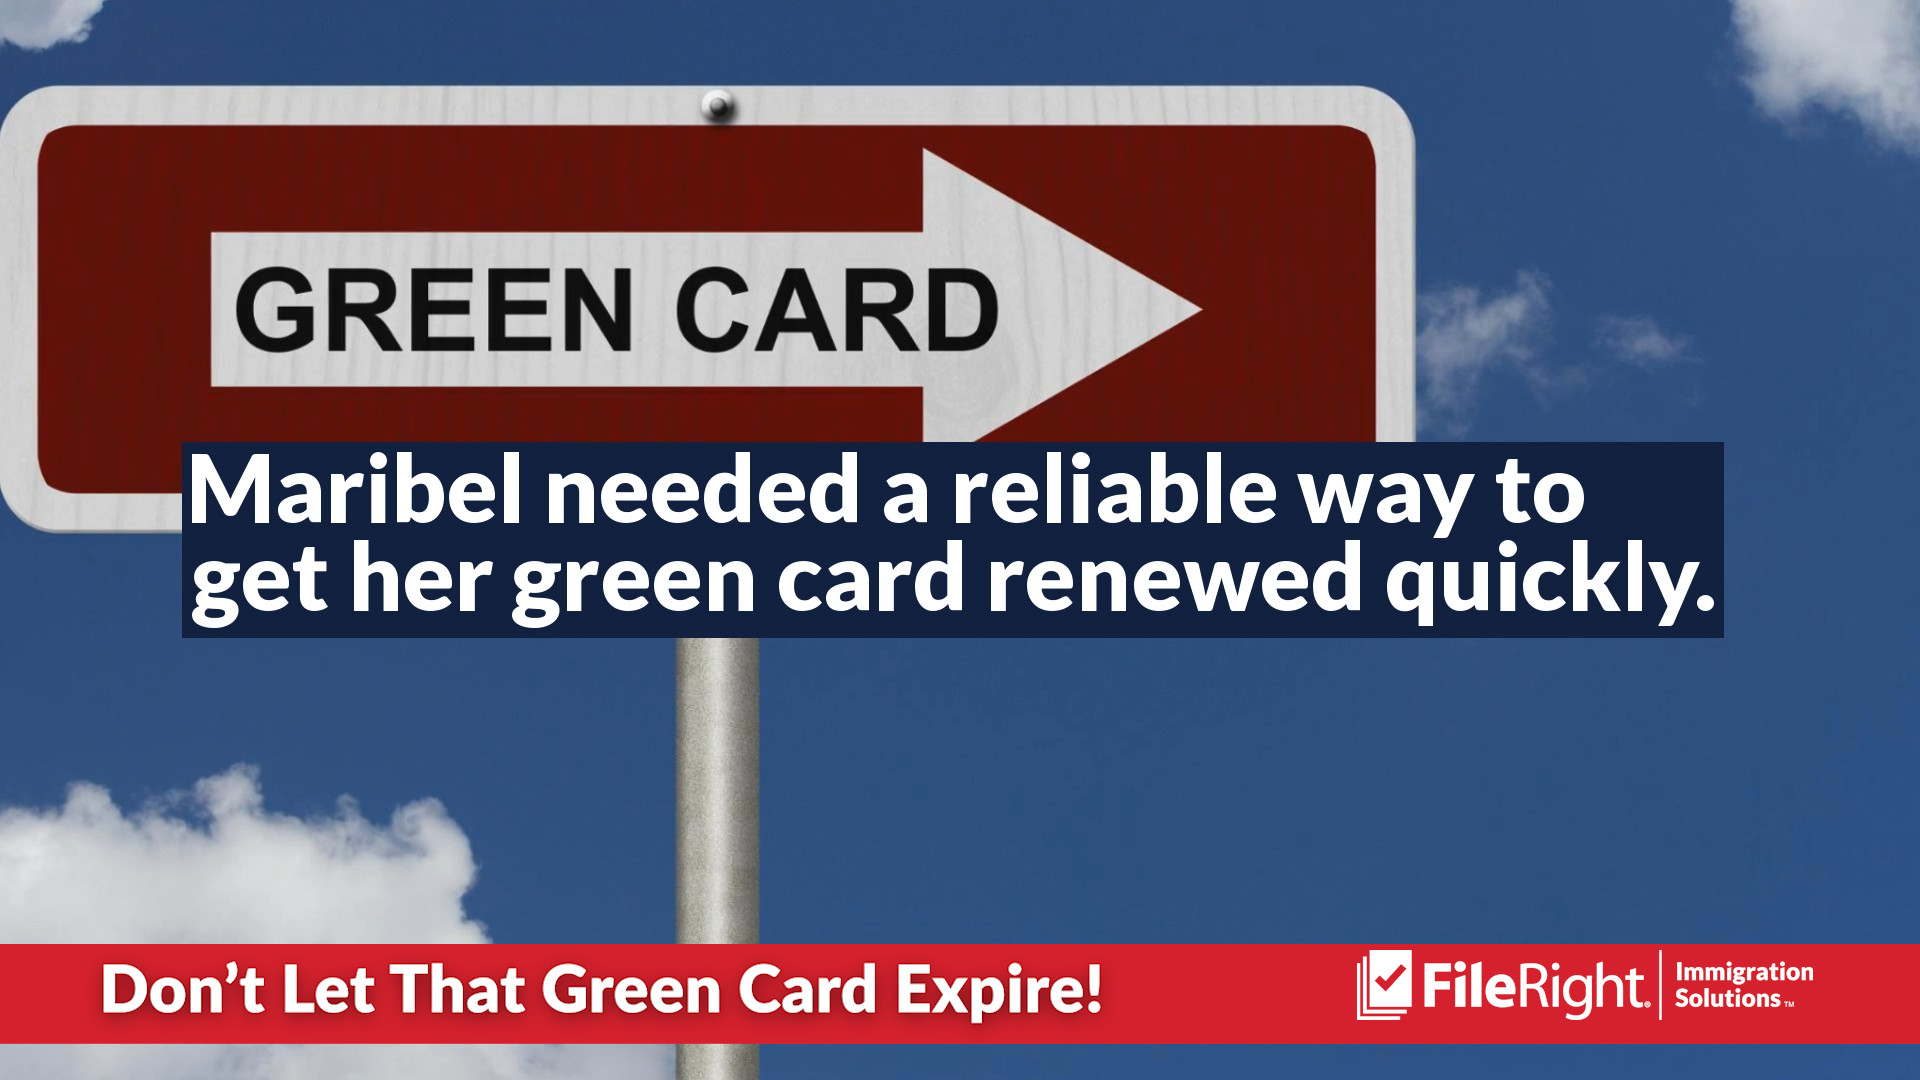 Some people don't realize their green card is expiring.